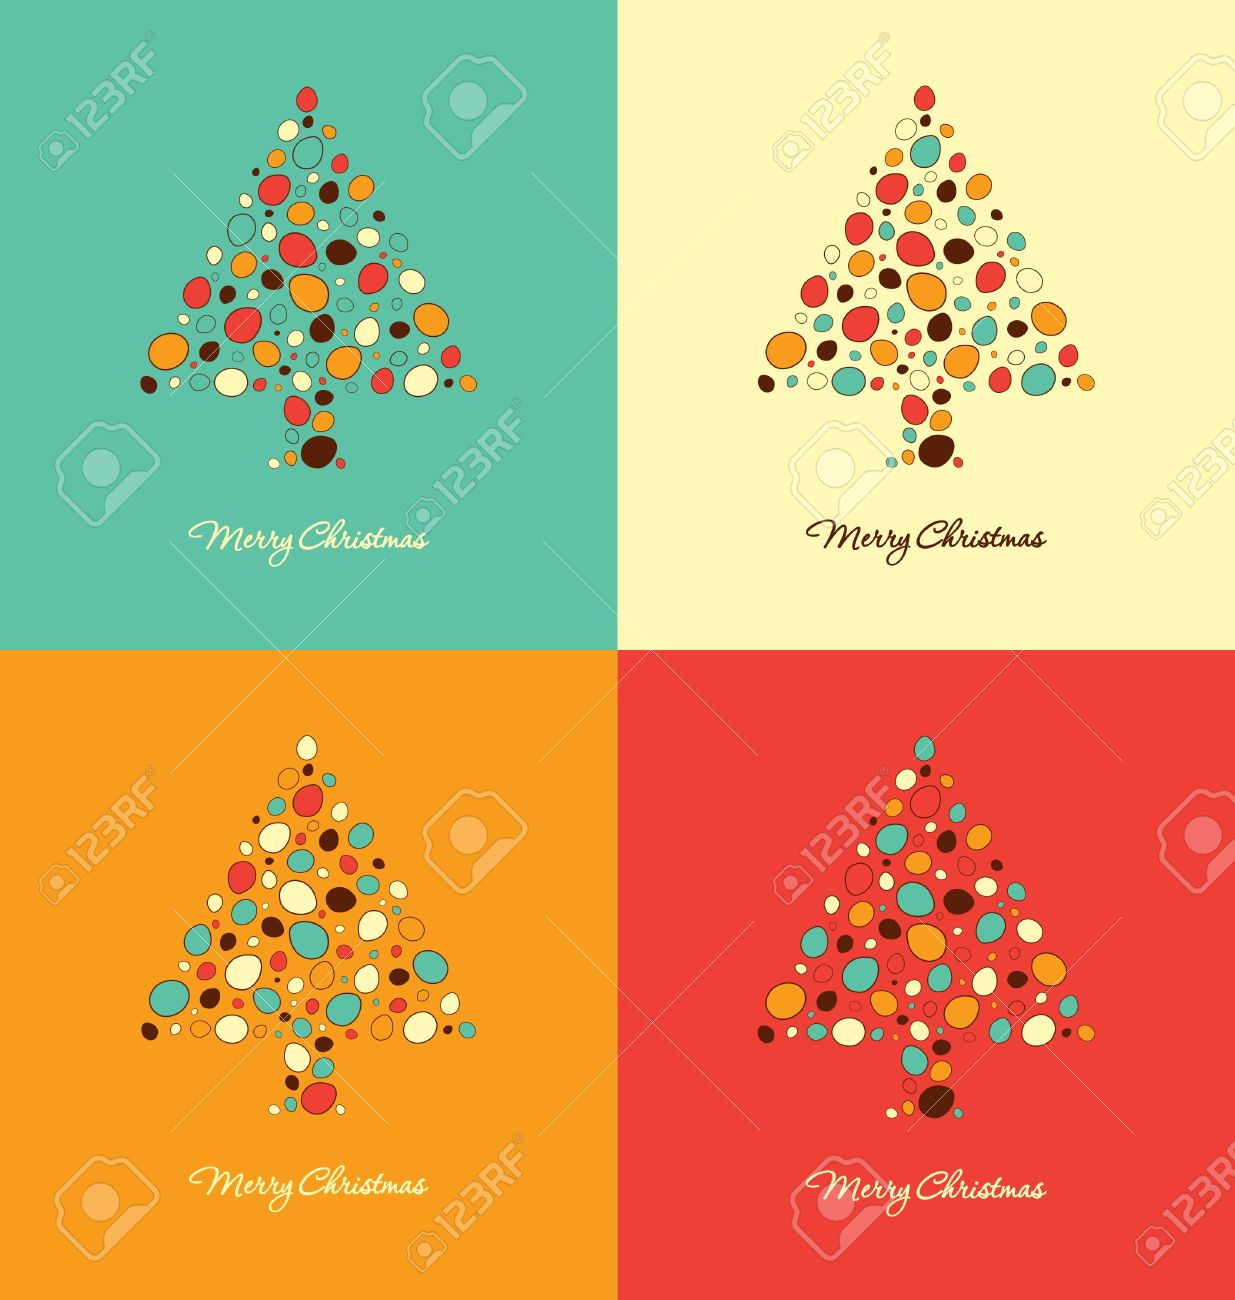 Christmas card design templates royalty free cliparts vectors and christmas card design templates m4hsunfo